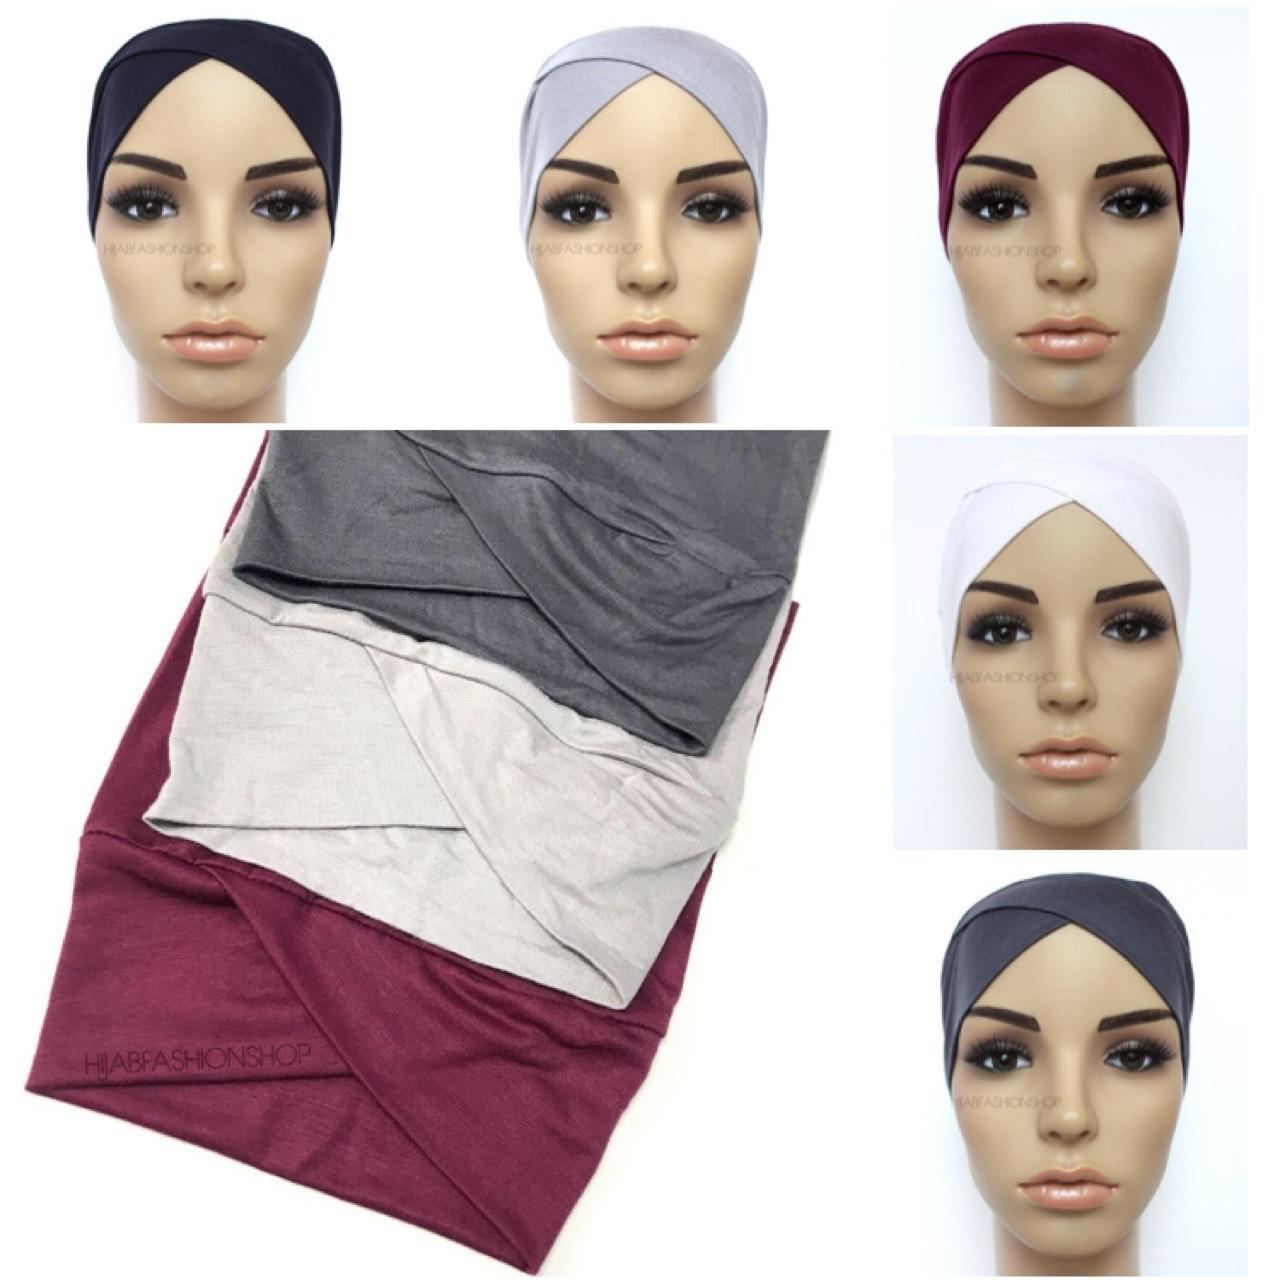 5 crossover tube hijab undercaps